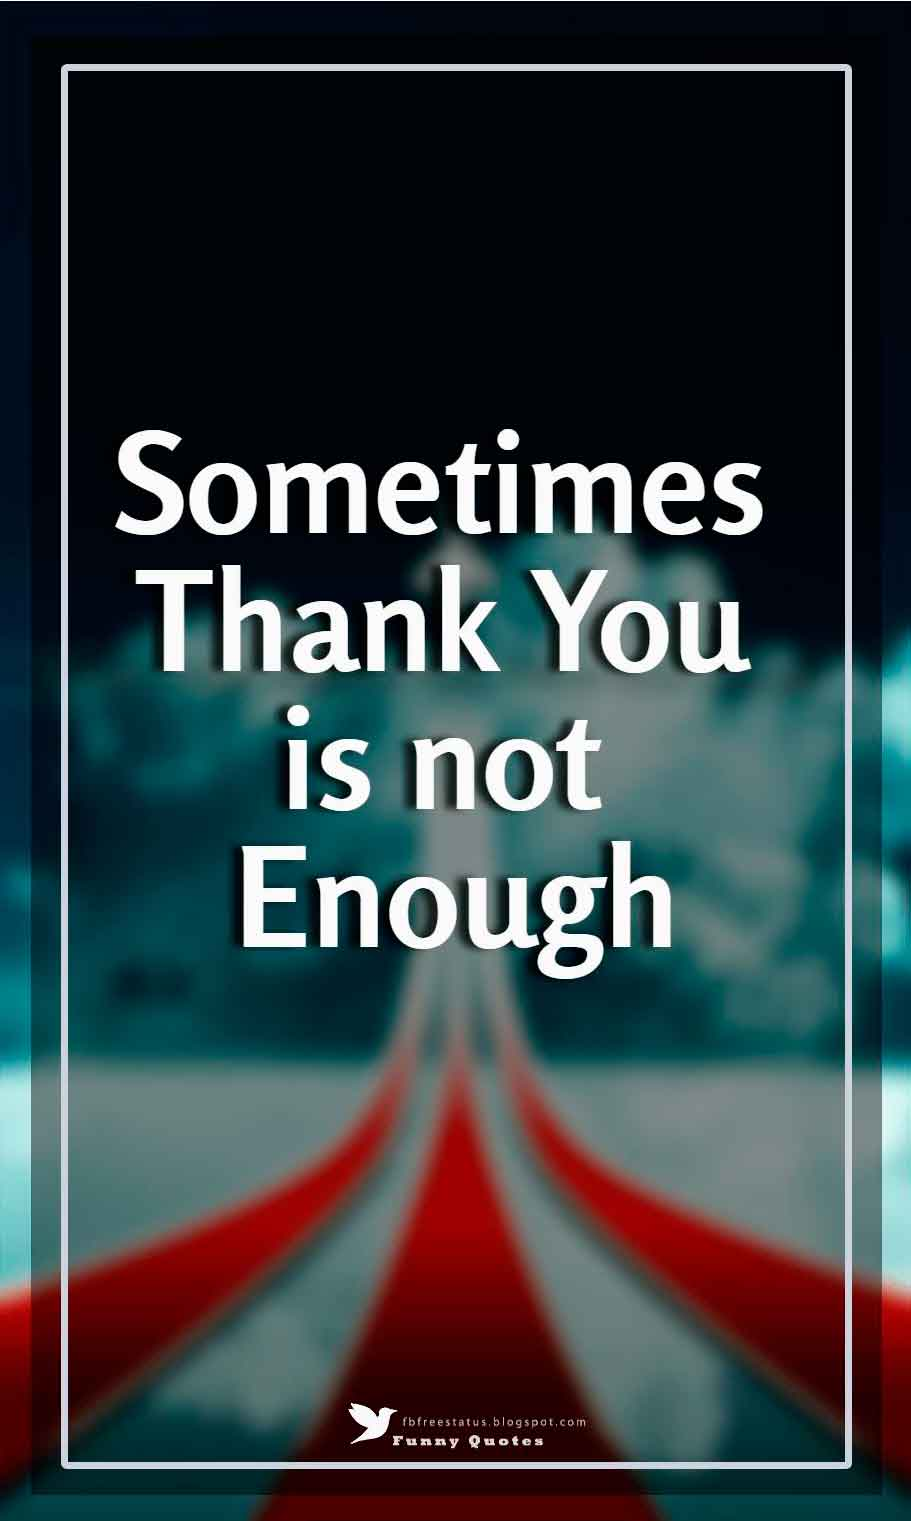 Sometimes thank you is not enough